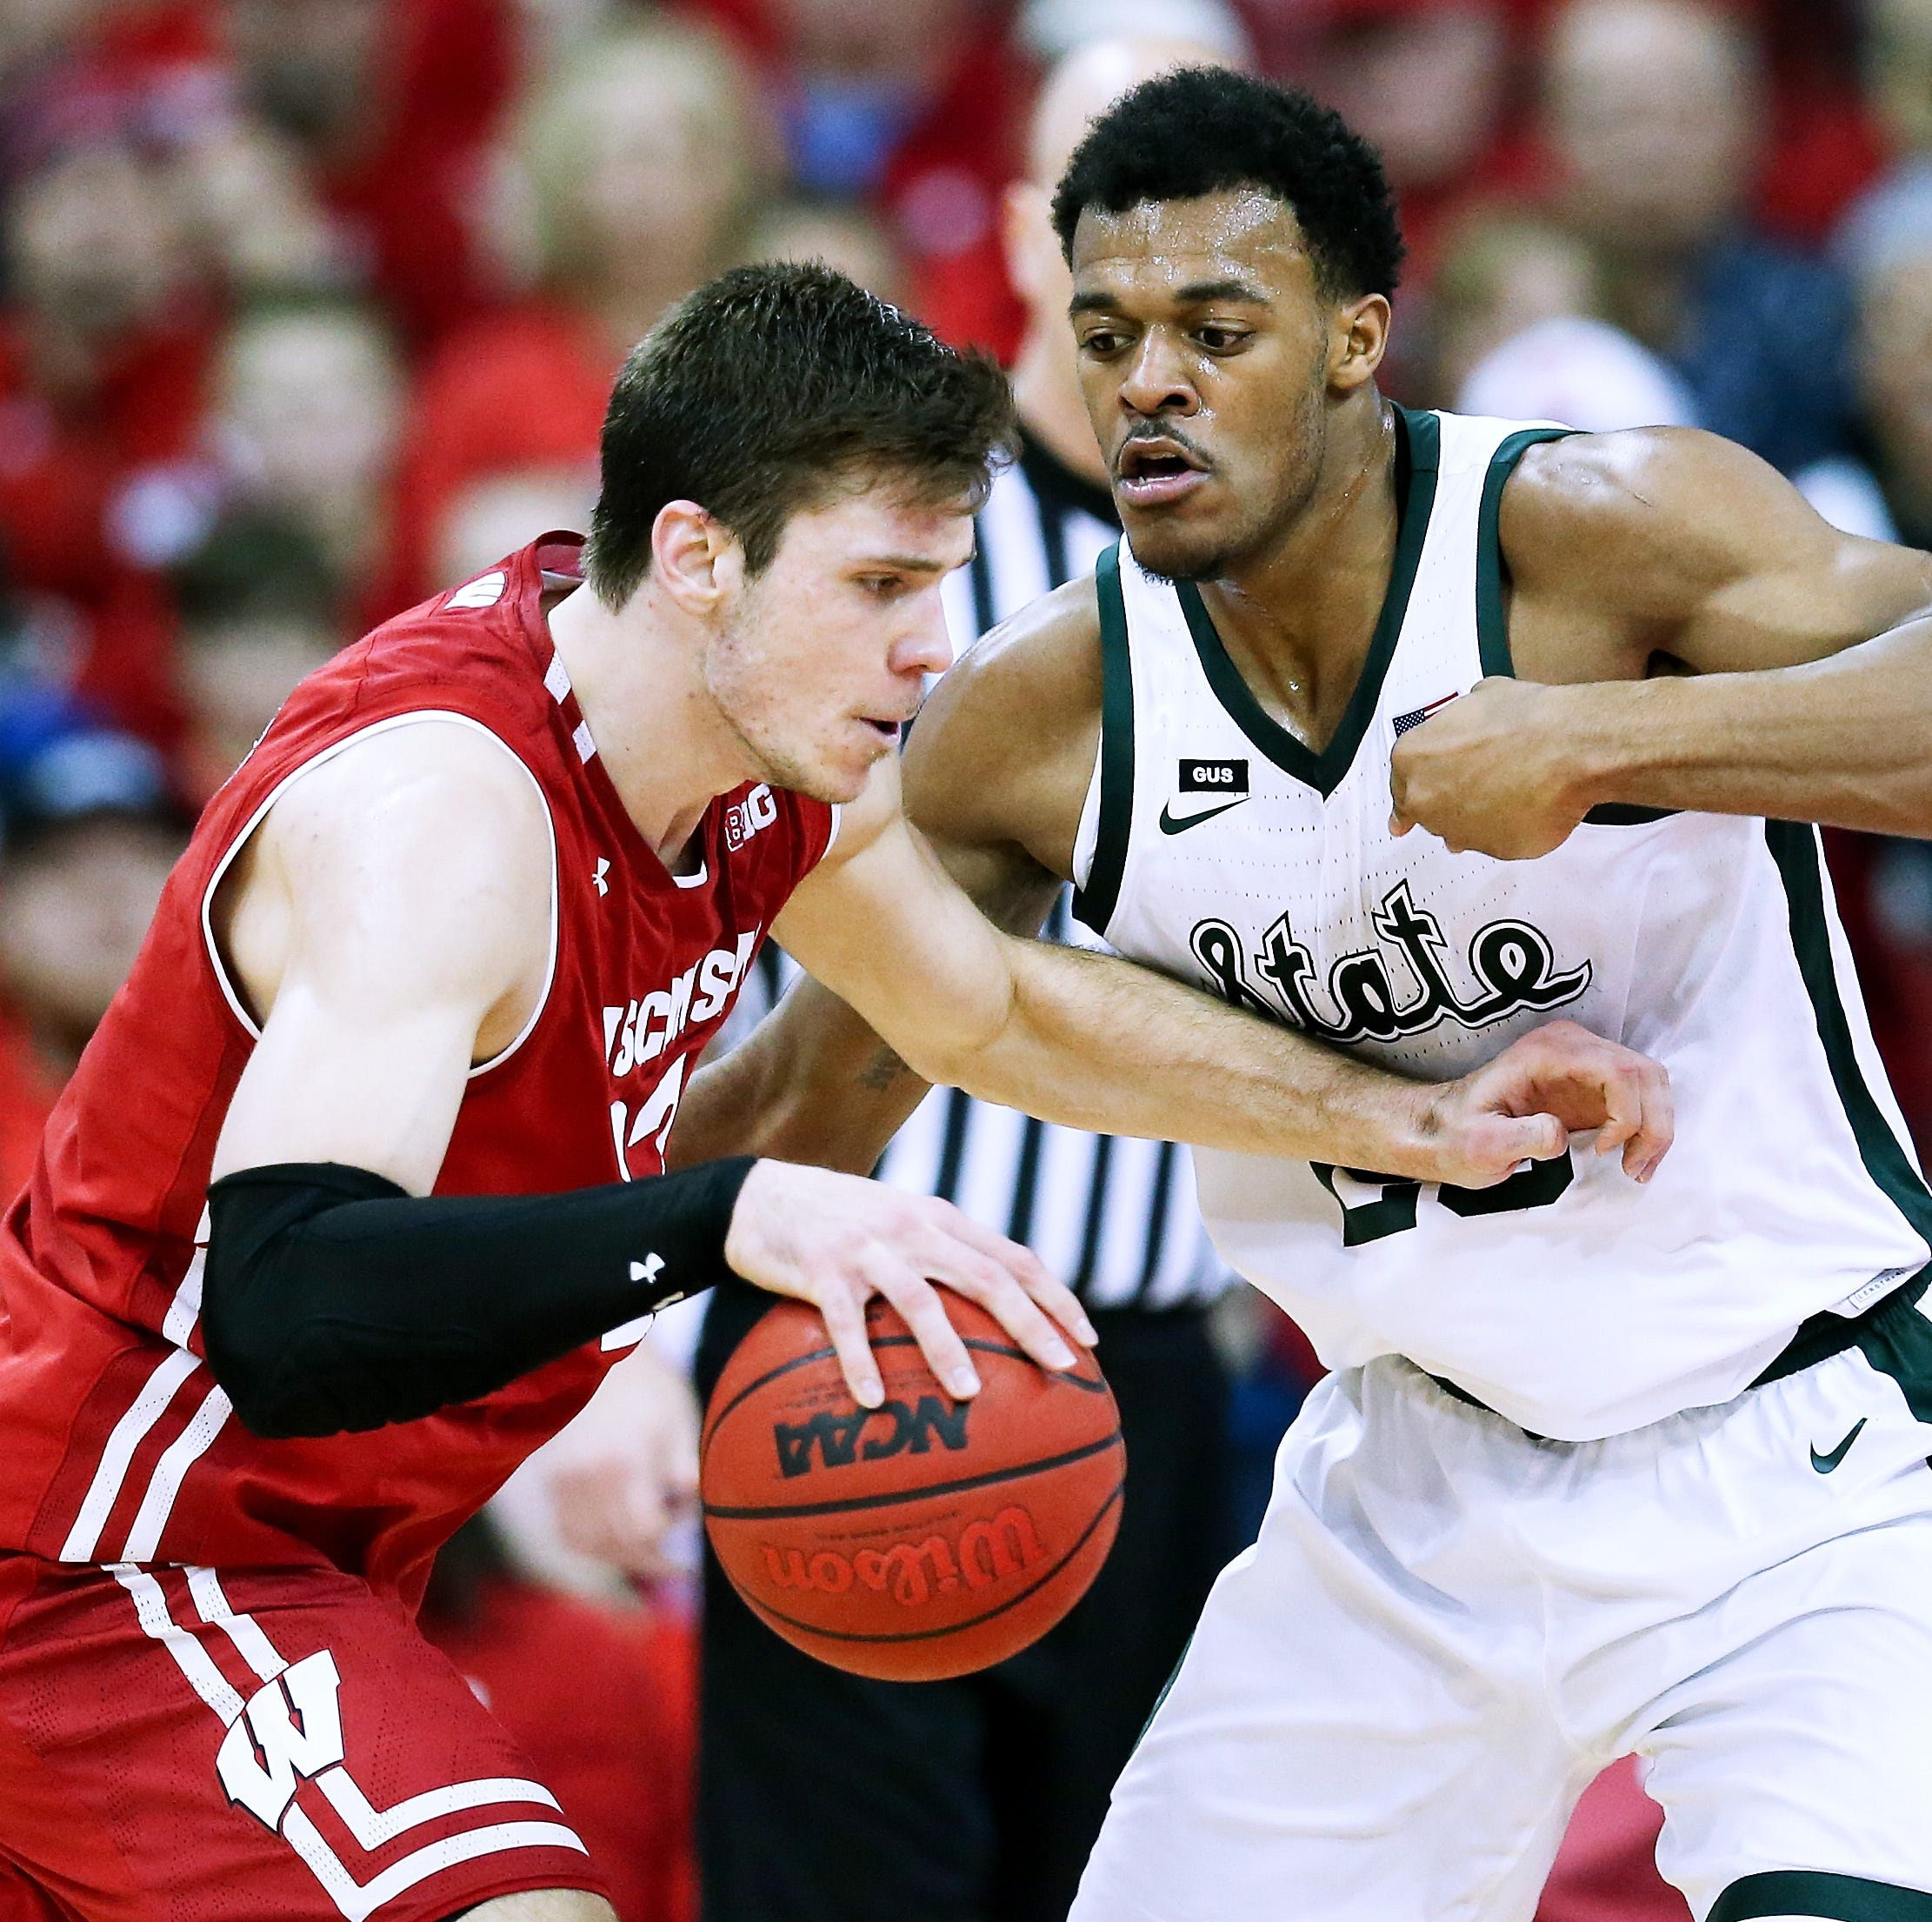 Big Ten tournament: How to watch Michigan State-Wisconsin basketball on TV, stream online